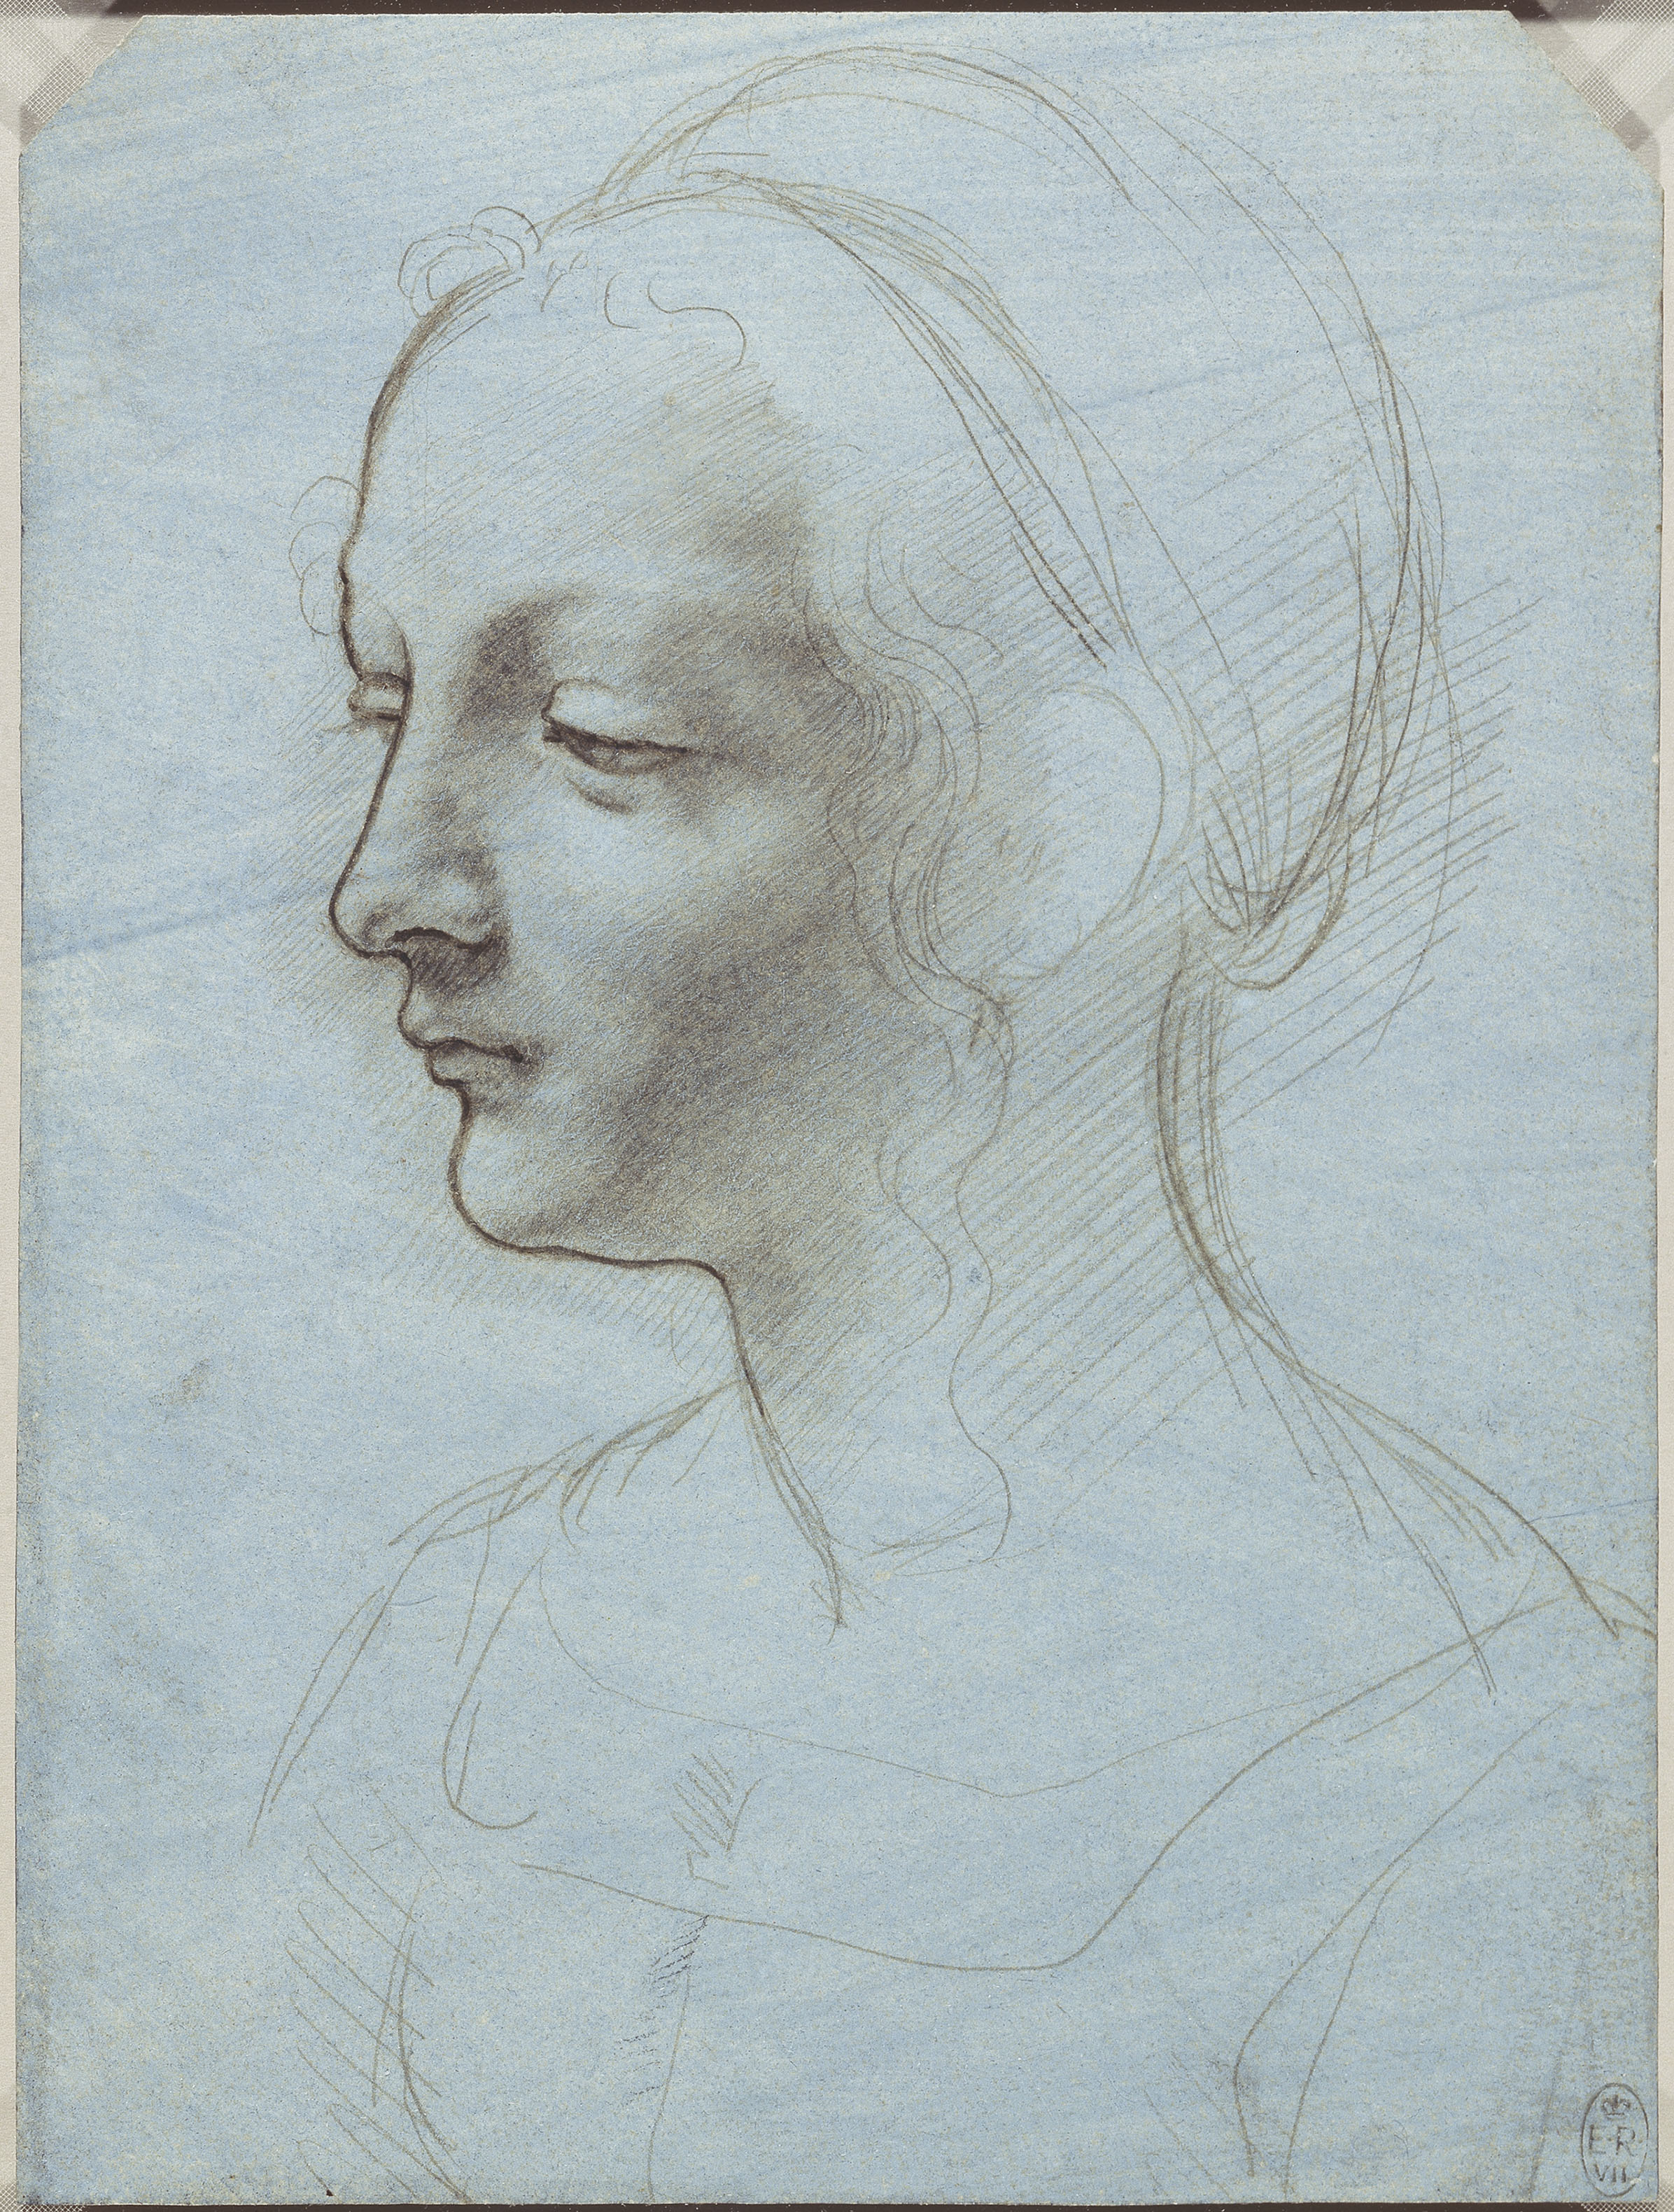 Leonardo da Vinci, The head and shoulders of a woman, almost in profile, c.1485-90